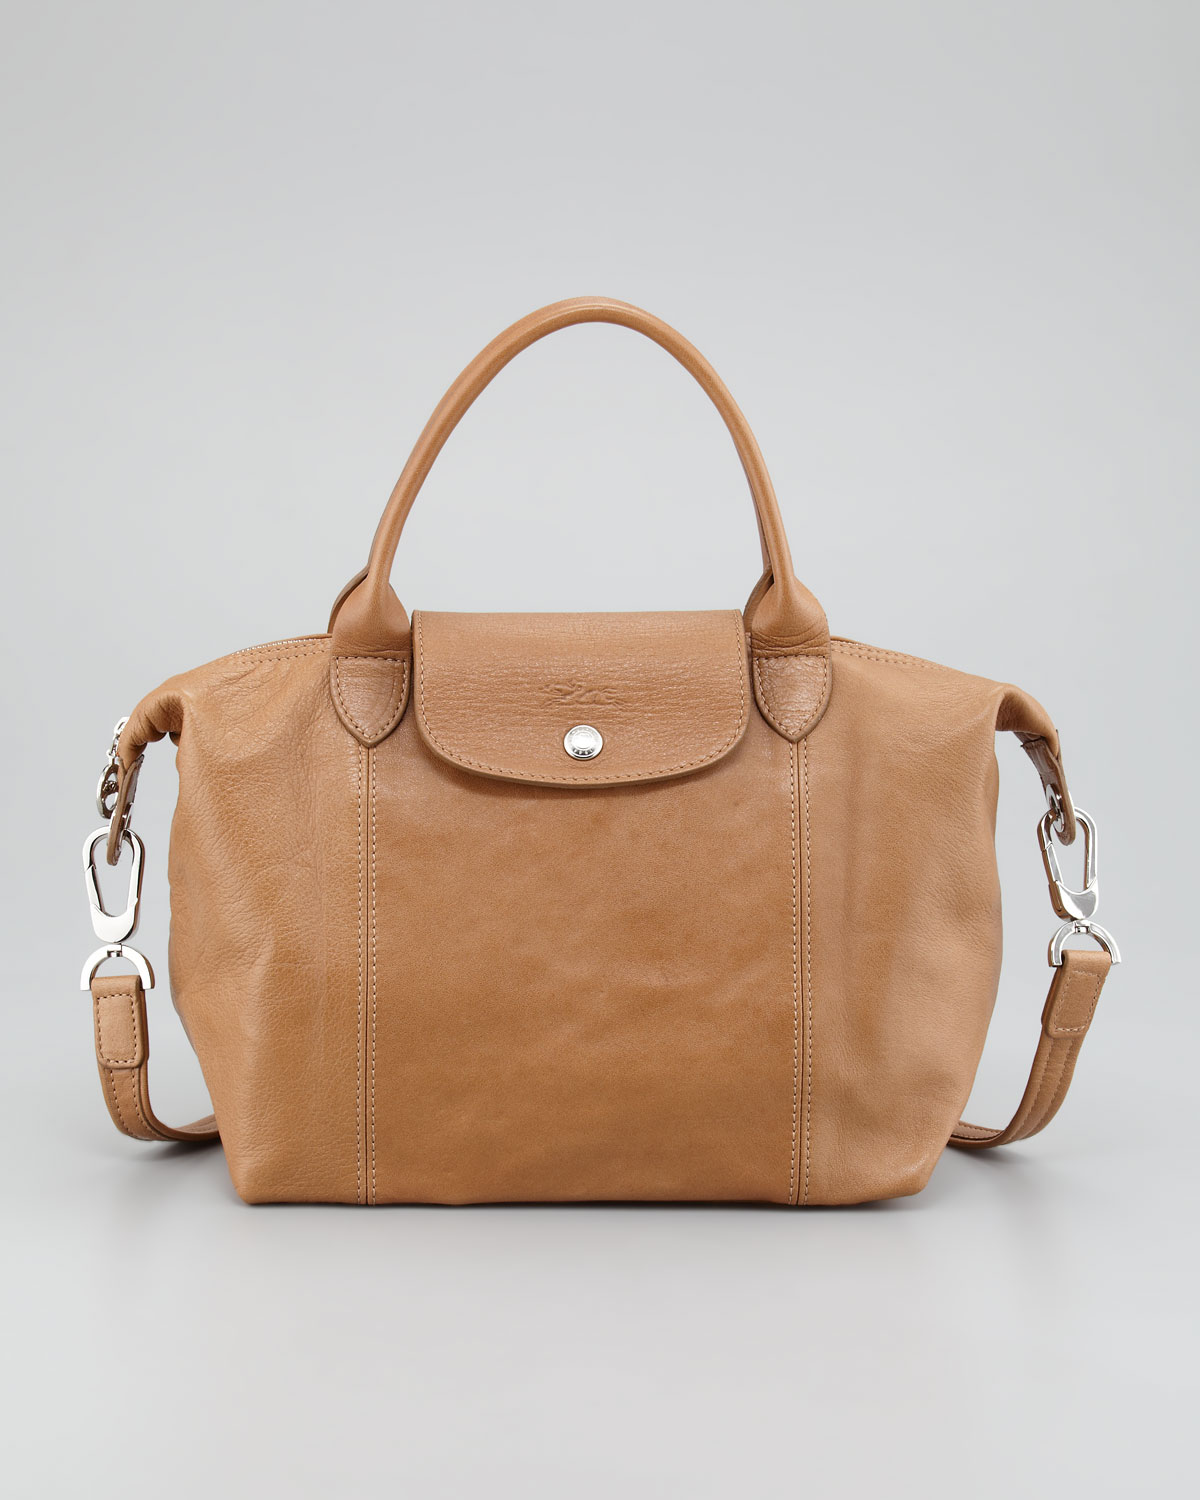 Lyst - Longchamp Small Leather Tote Bag in Brown 6ffbc8f2bd4a4